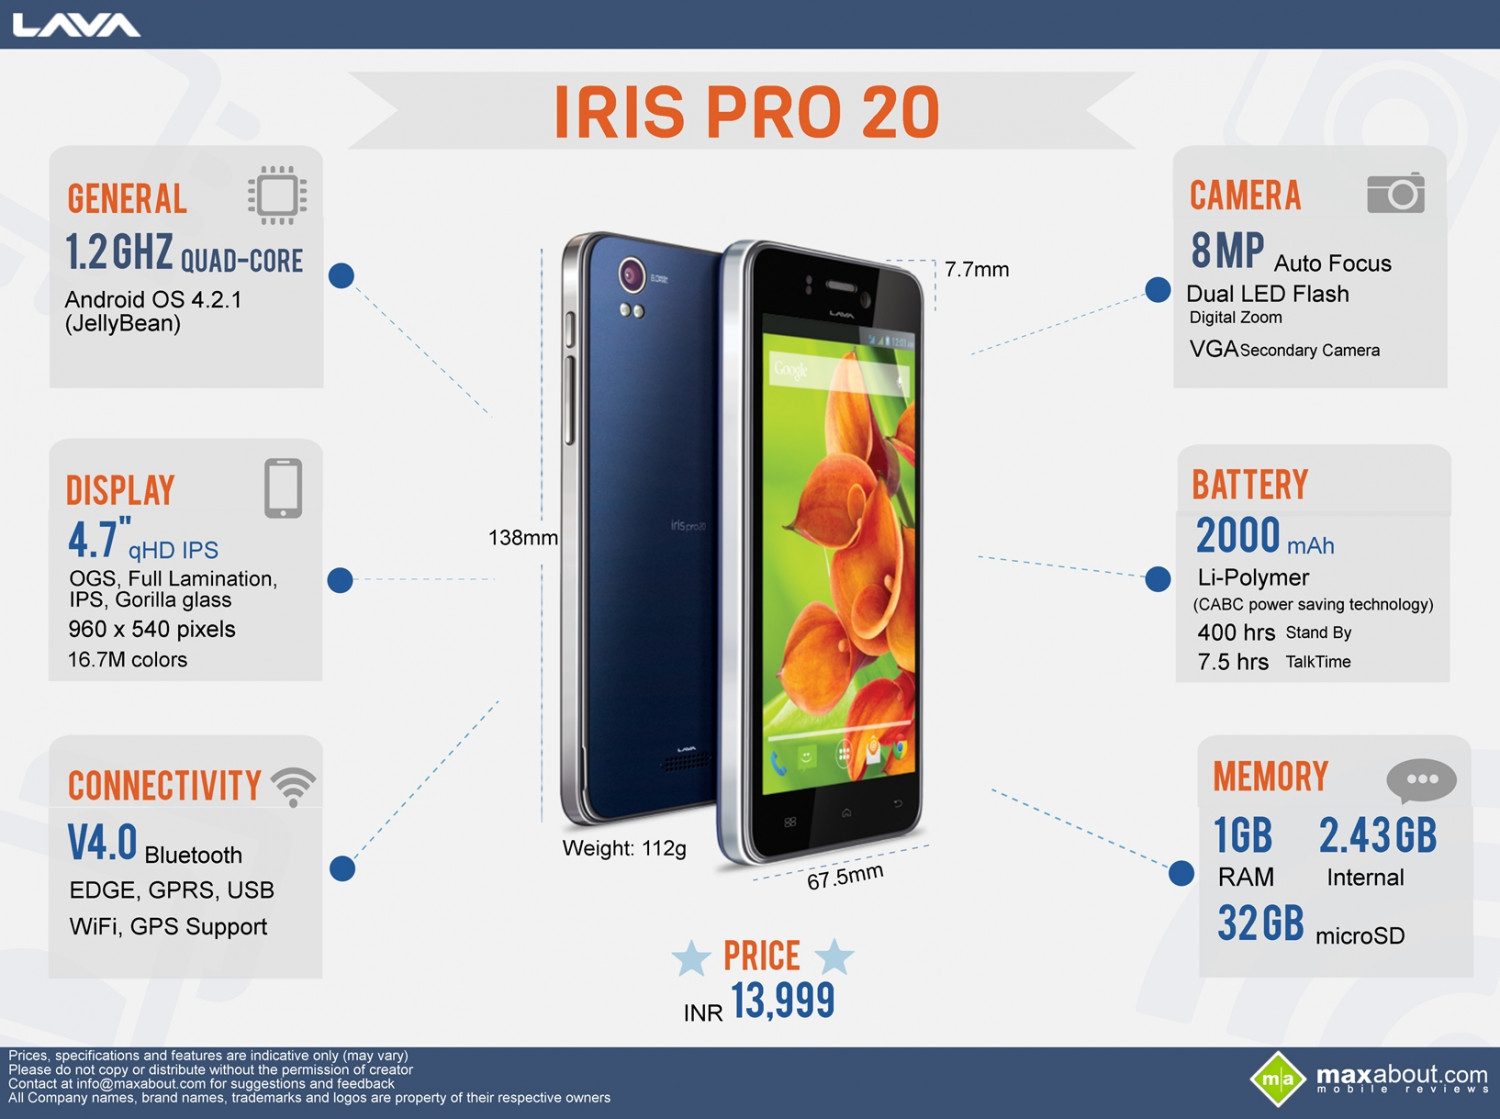 All You Need to Know about Lava IRIS Pro 20 Infographic